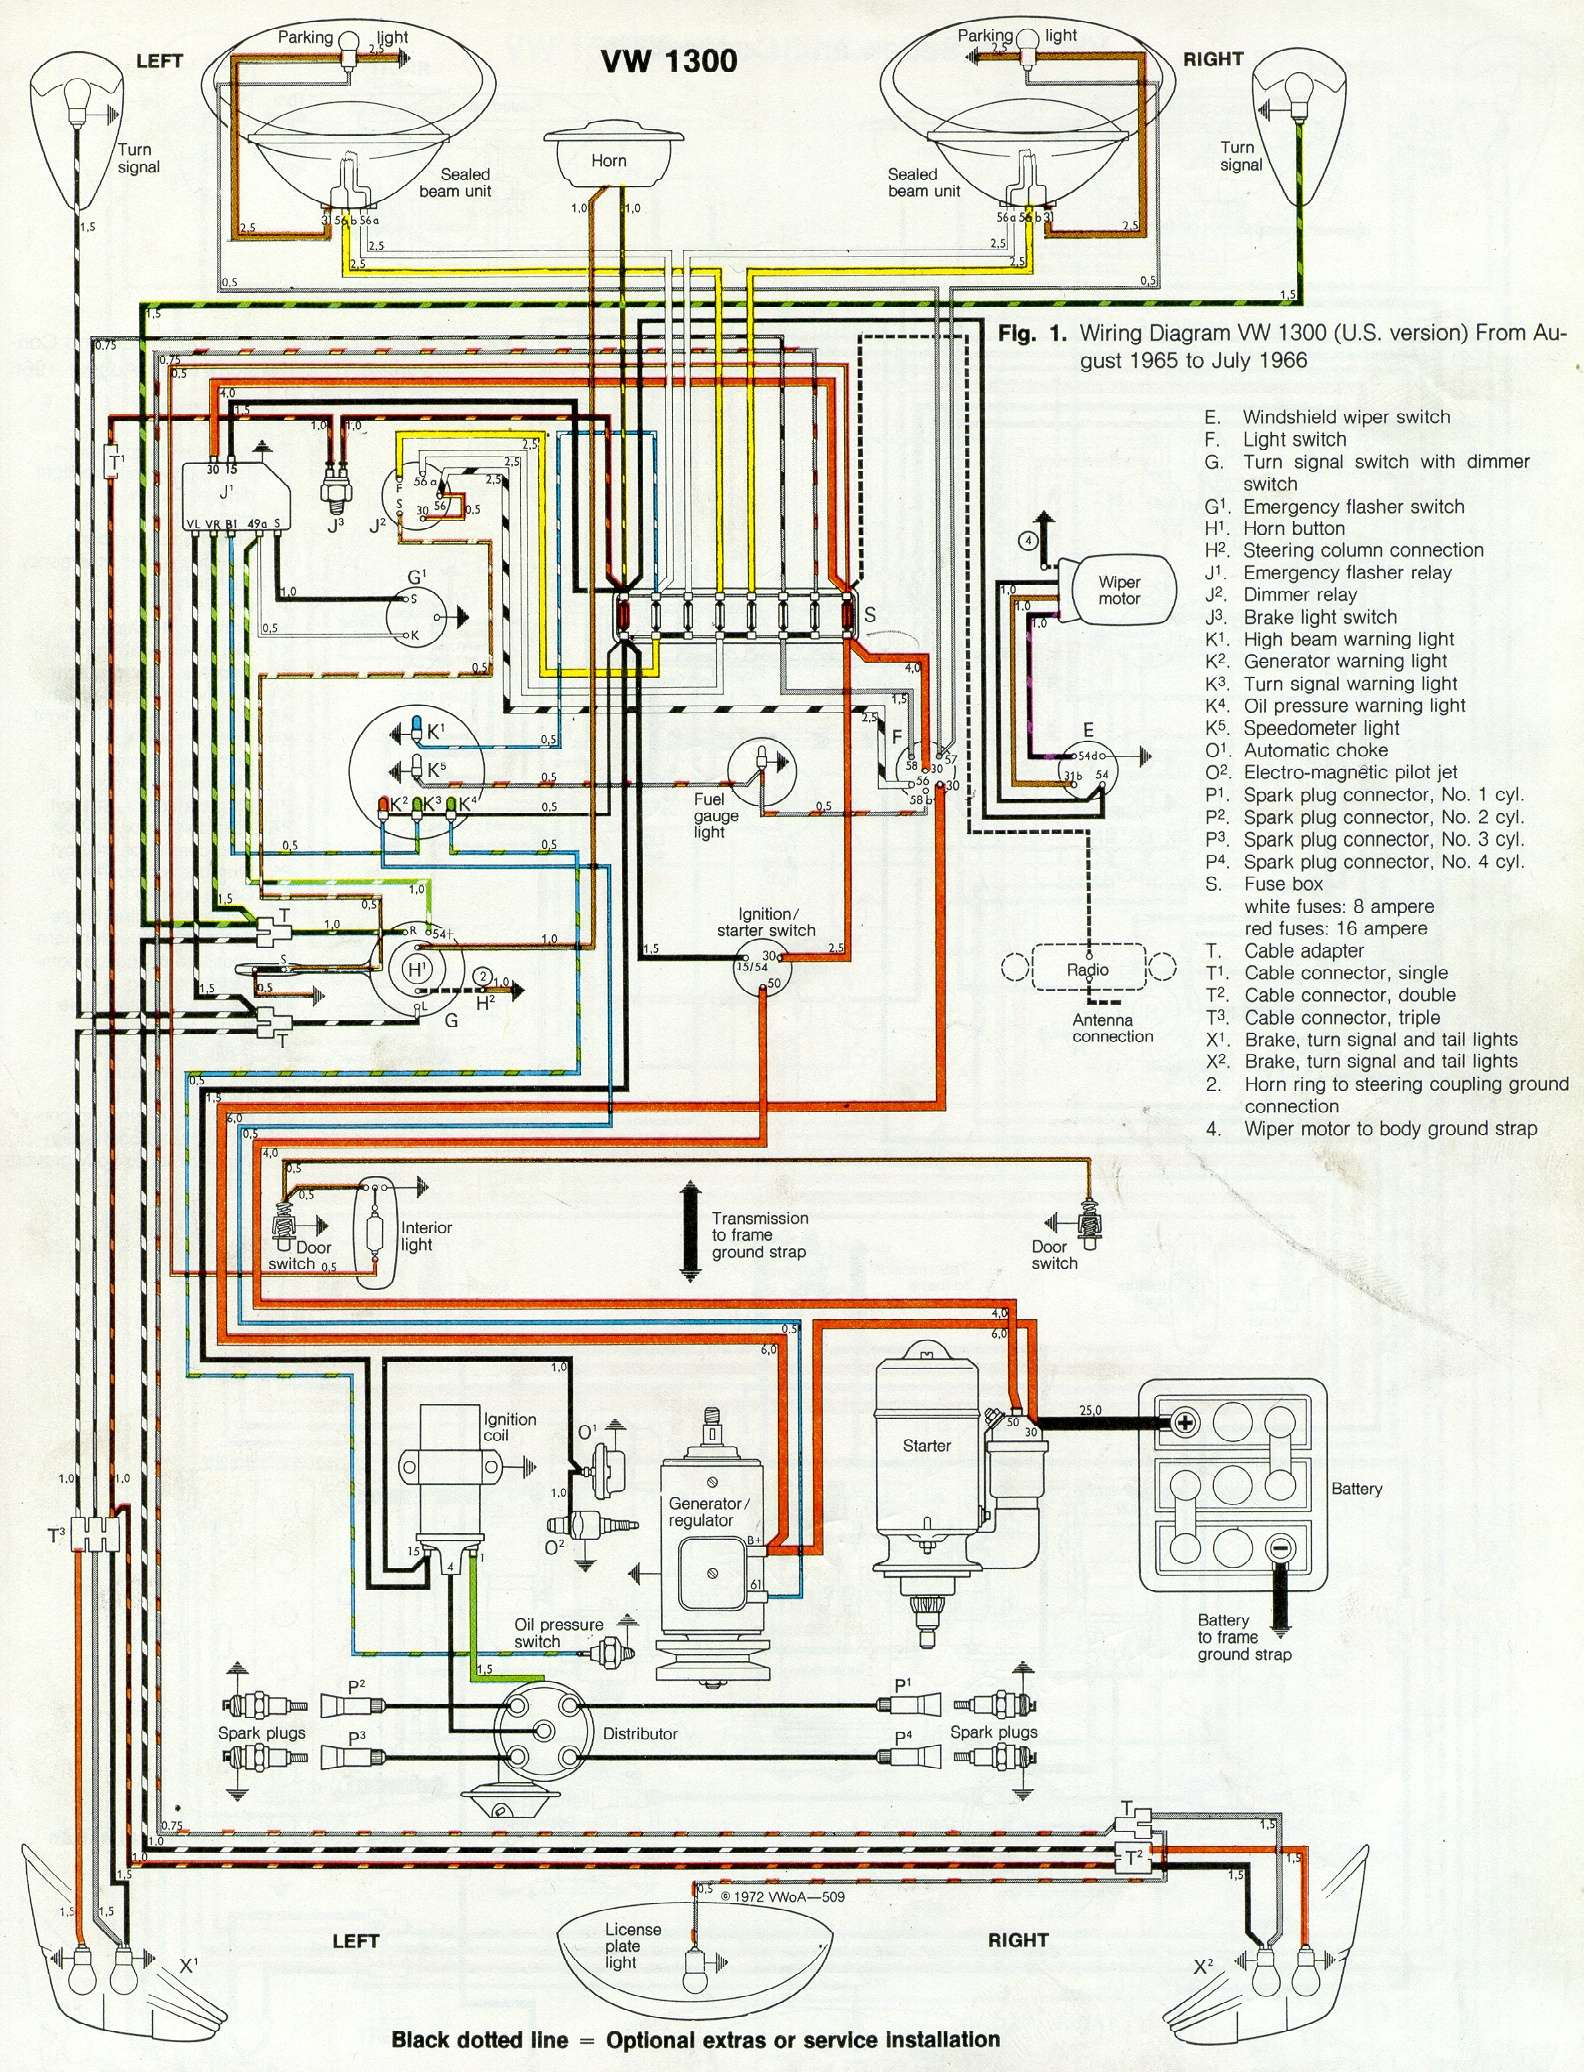 hight resolution of 1966 vw coil wire diagram wiring diagram repair guidesthesamba com type 1 wiring diagrams1966 vw coil